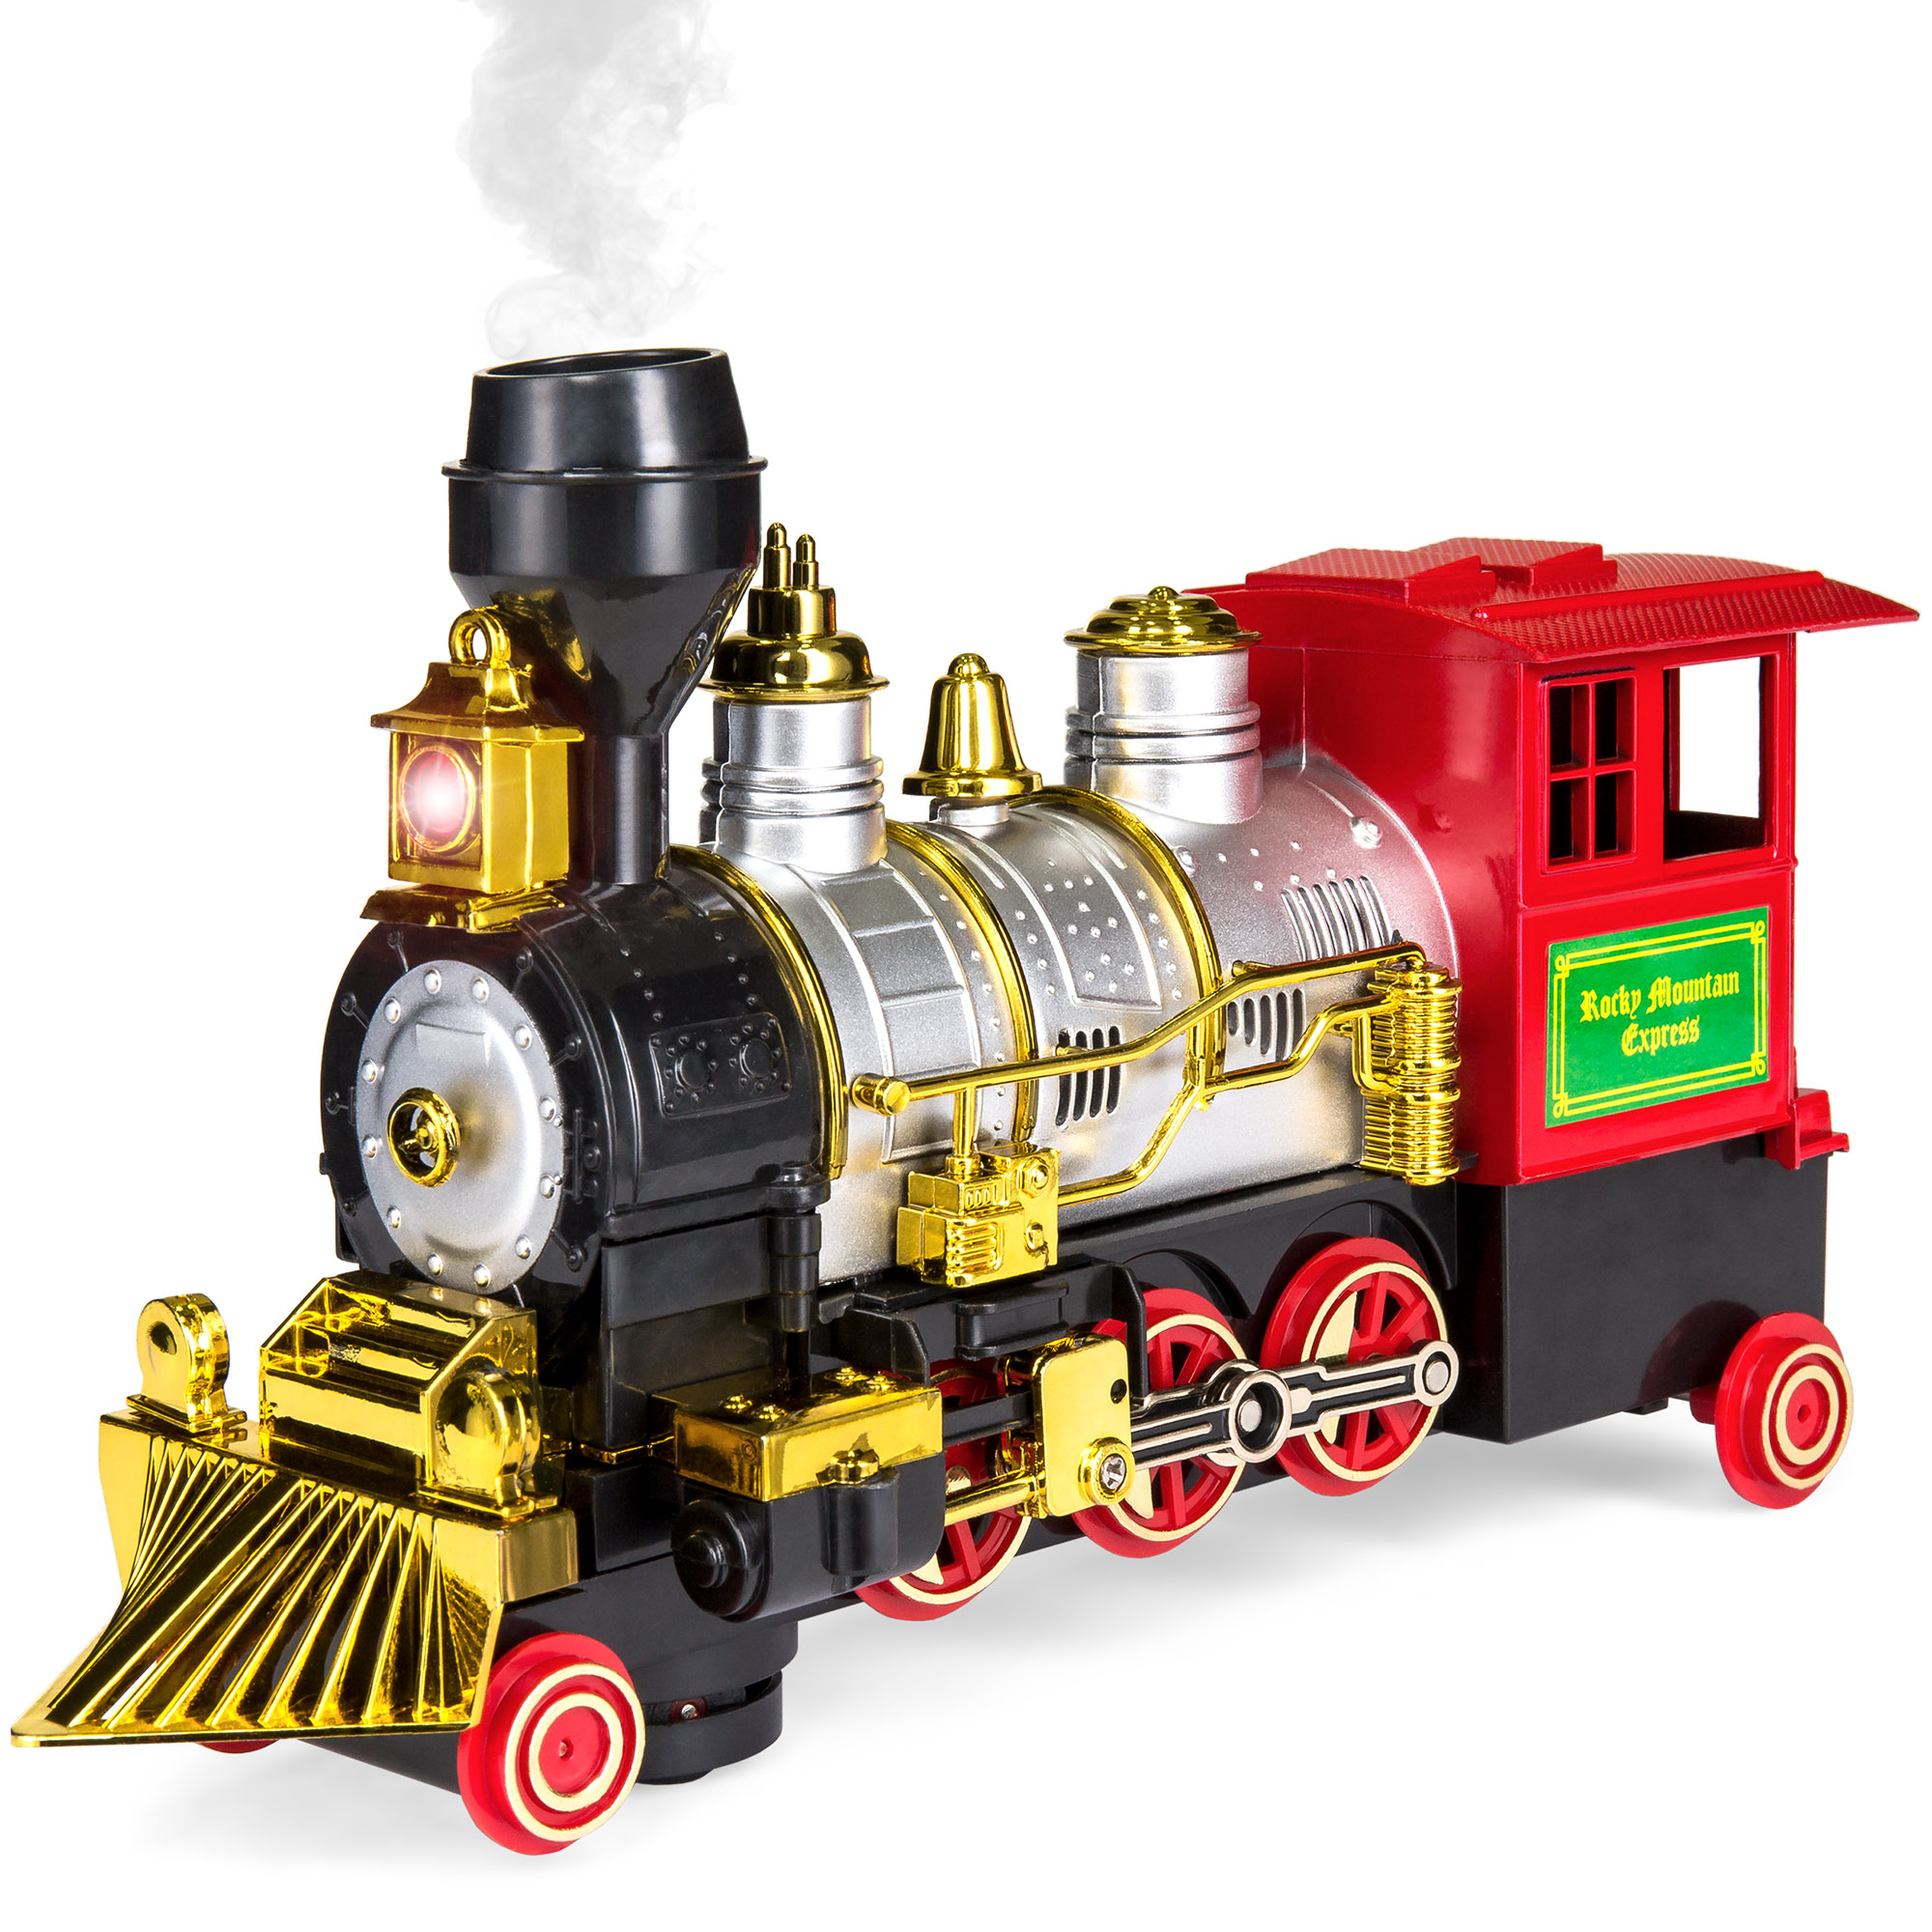 Best Choice Products Kids Battery Powered Bump-and-Go Model Toy Train w/ Headlight, Horn, Smoke - Multicolor